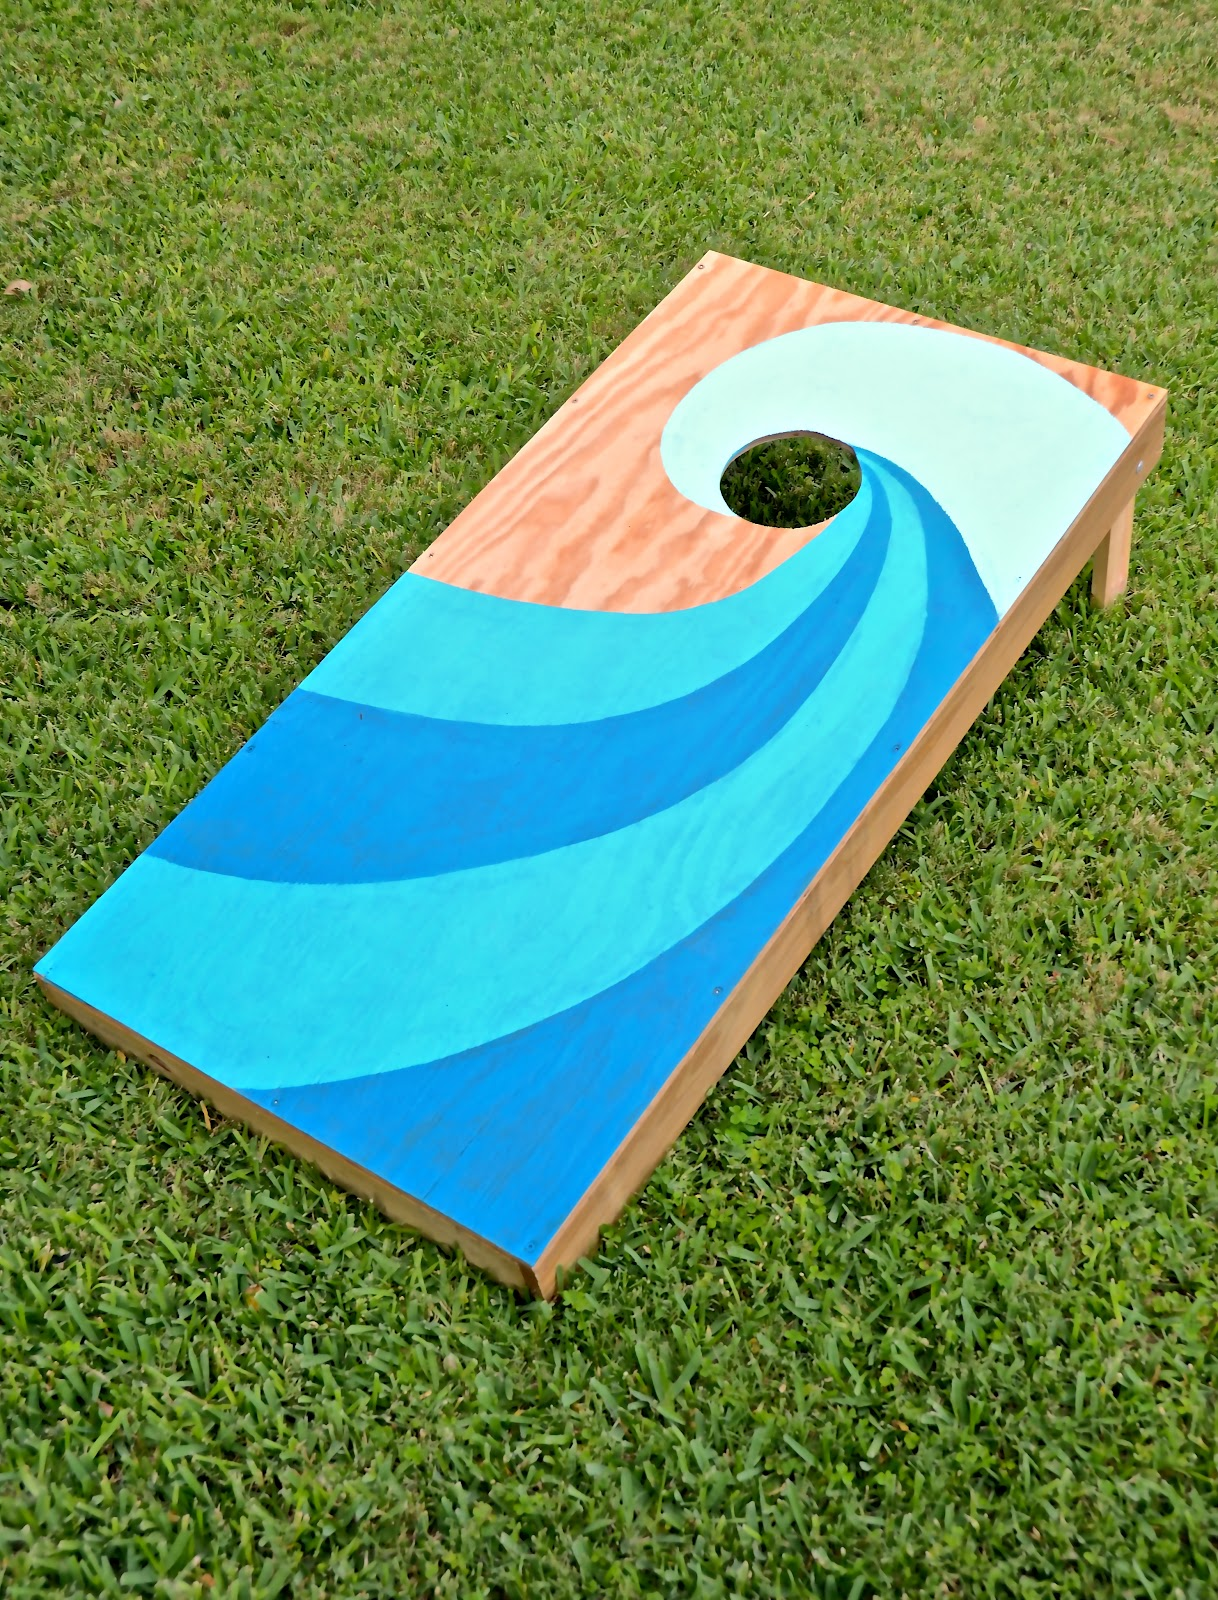 Cool Designs For My Cornhole Game